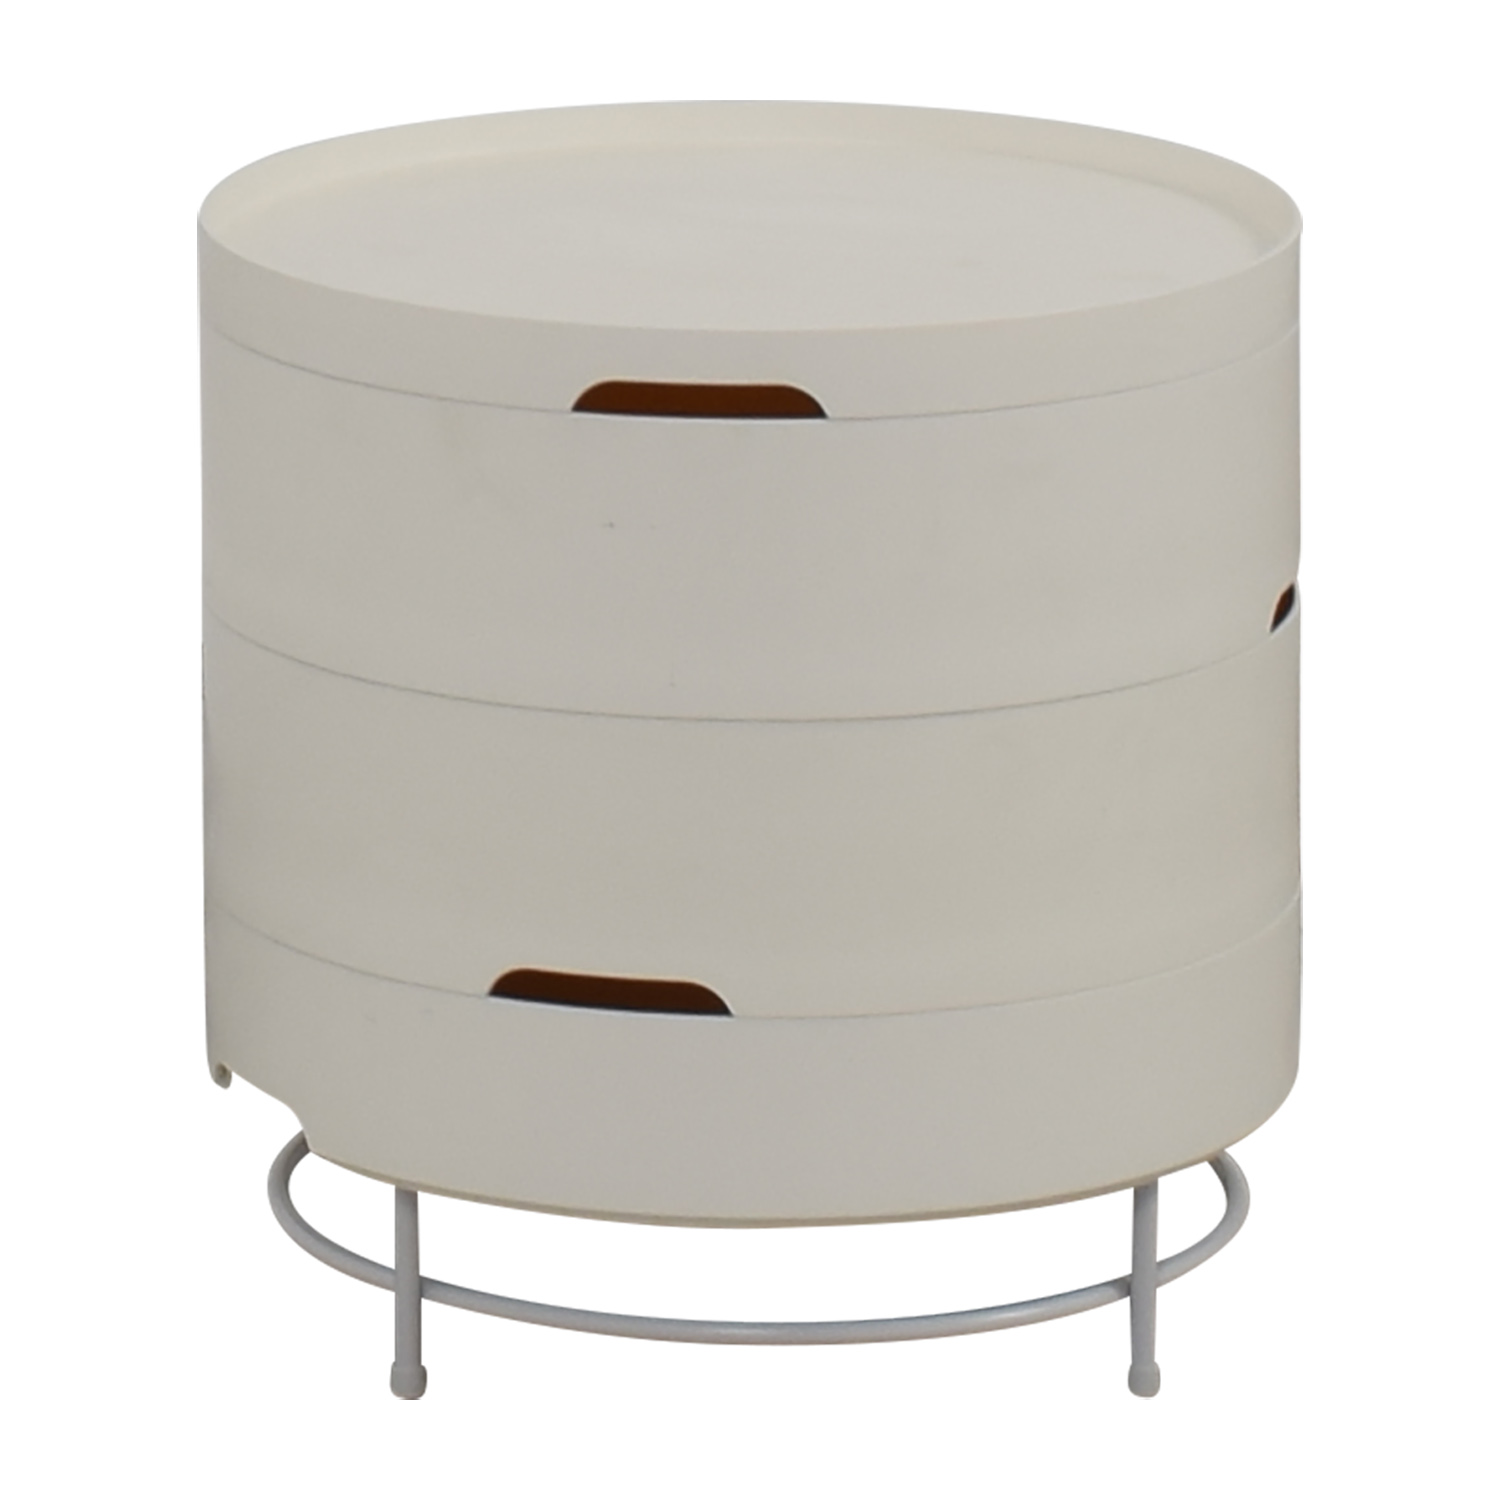 57 Off Ikea Ikea Ps 2014 White Round Storage Table Tables